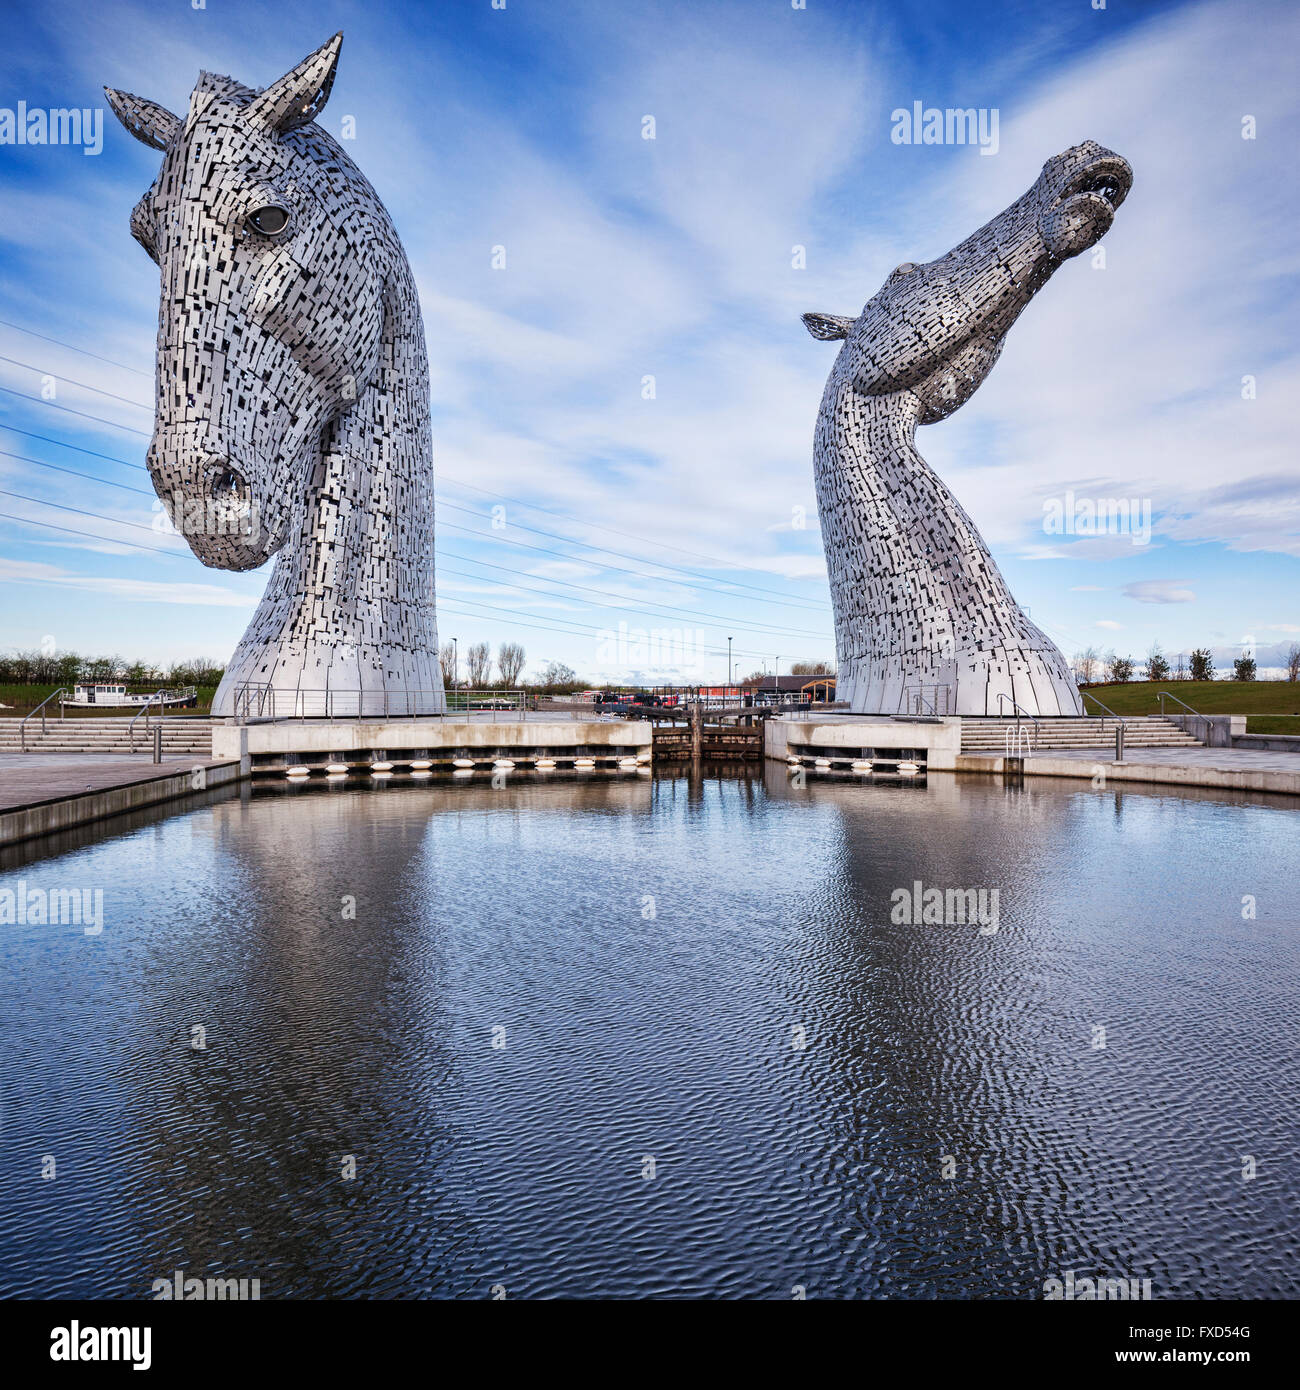 'The Kelpies' by Andy Scott in The Helix Park, Falkirk, Scotland. - Stock Image